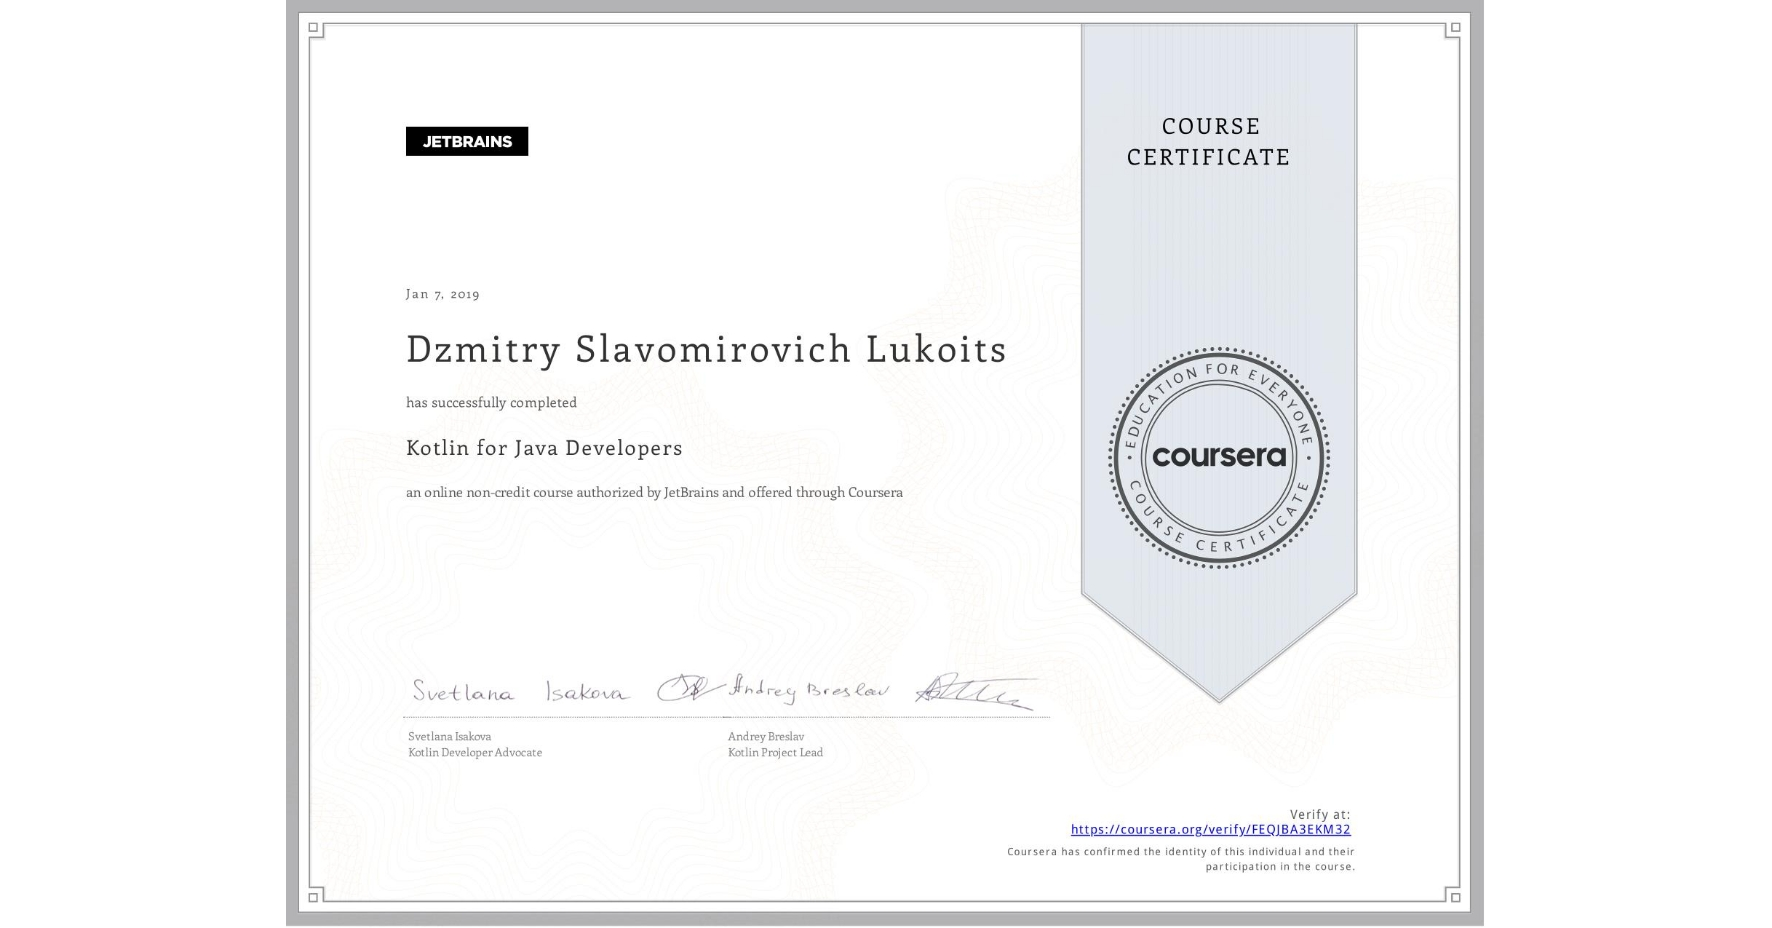 View certificate for Dzmitry Slavomirovich Lukoits, Kotlin for Java Developers, an online non-credit course authorized by JetBrains and offered through Coursera